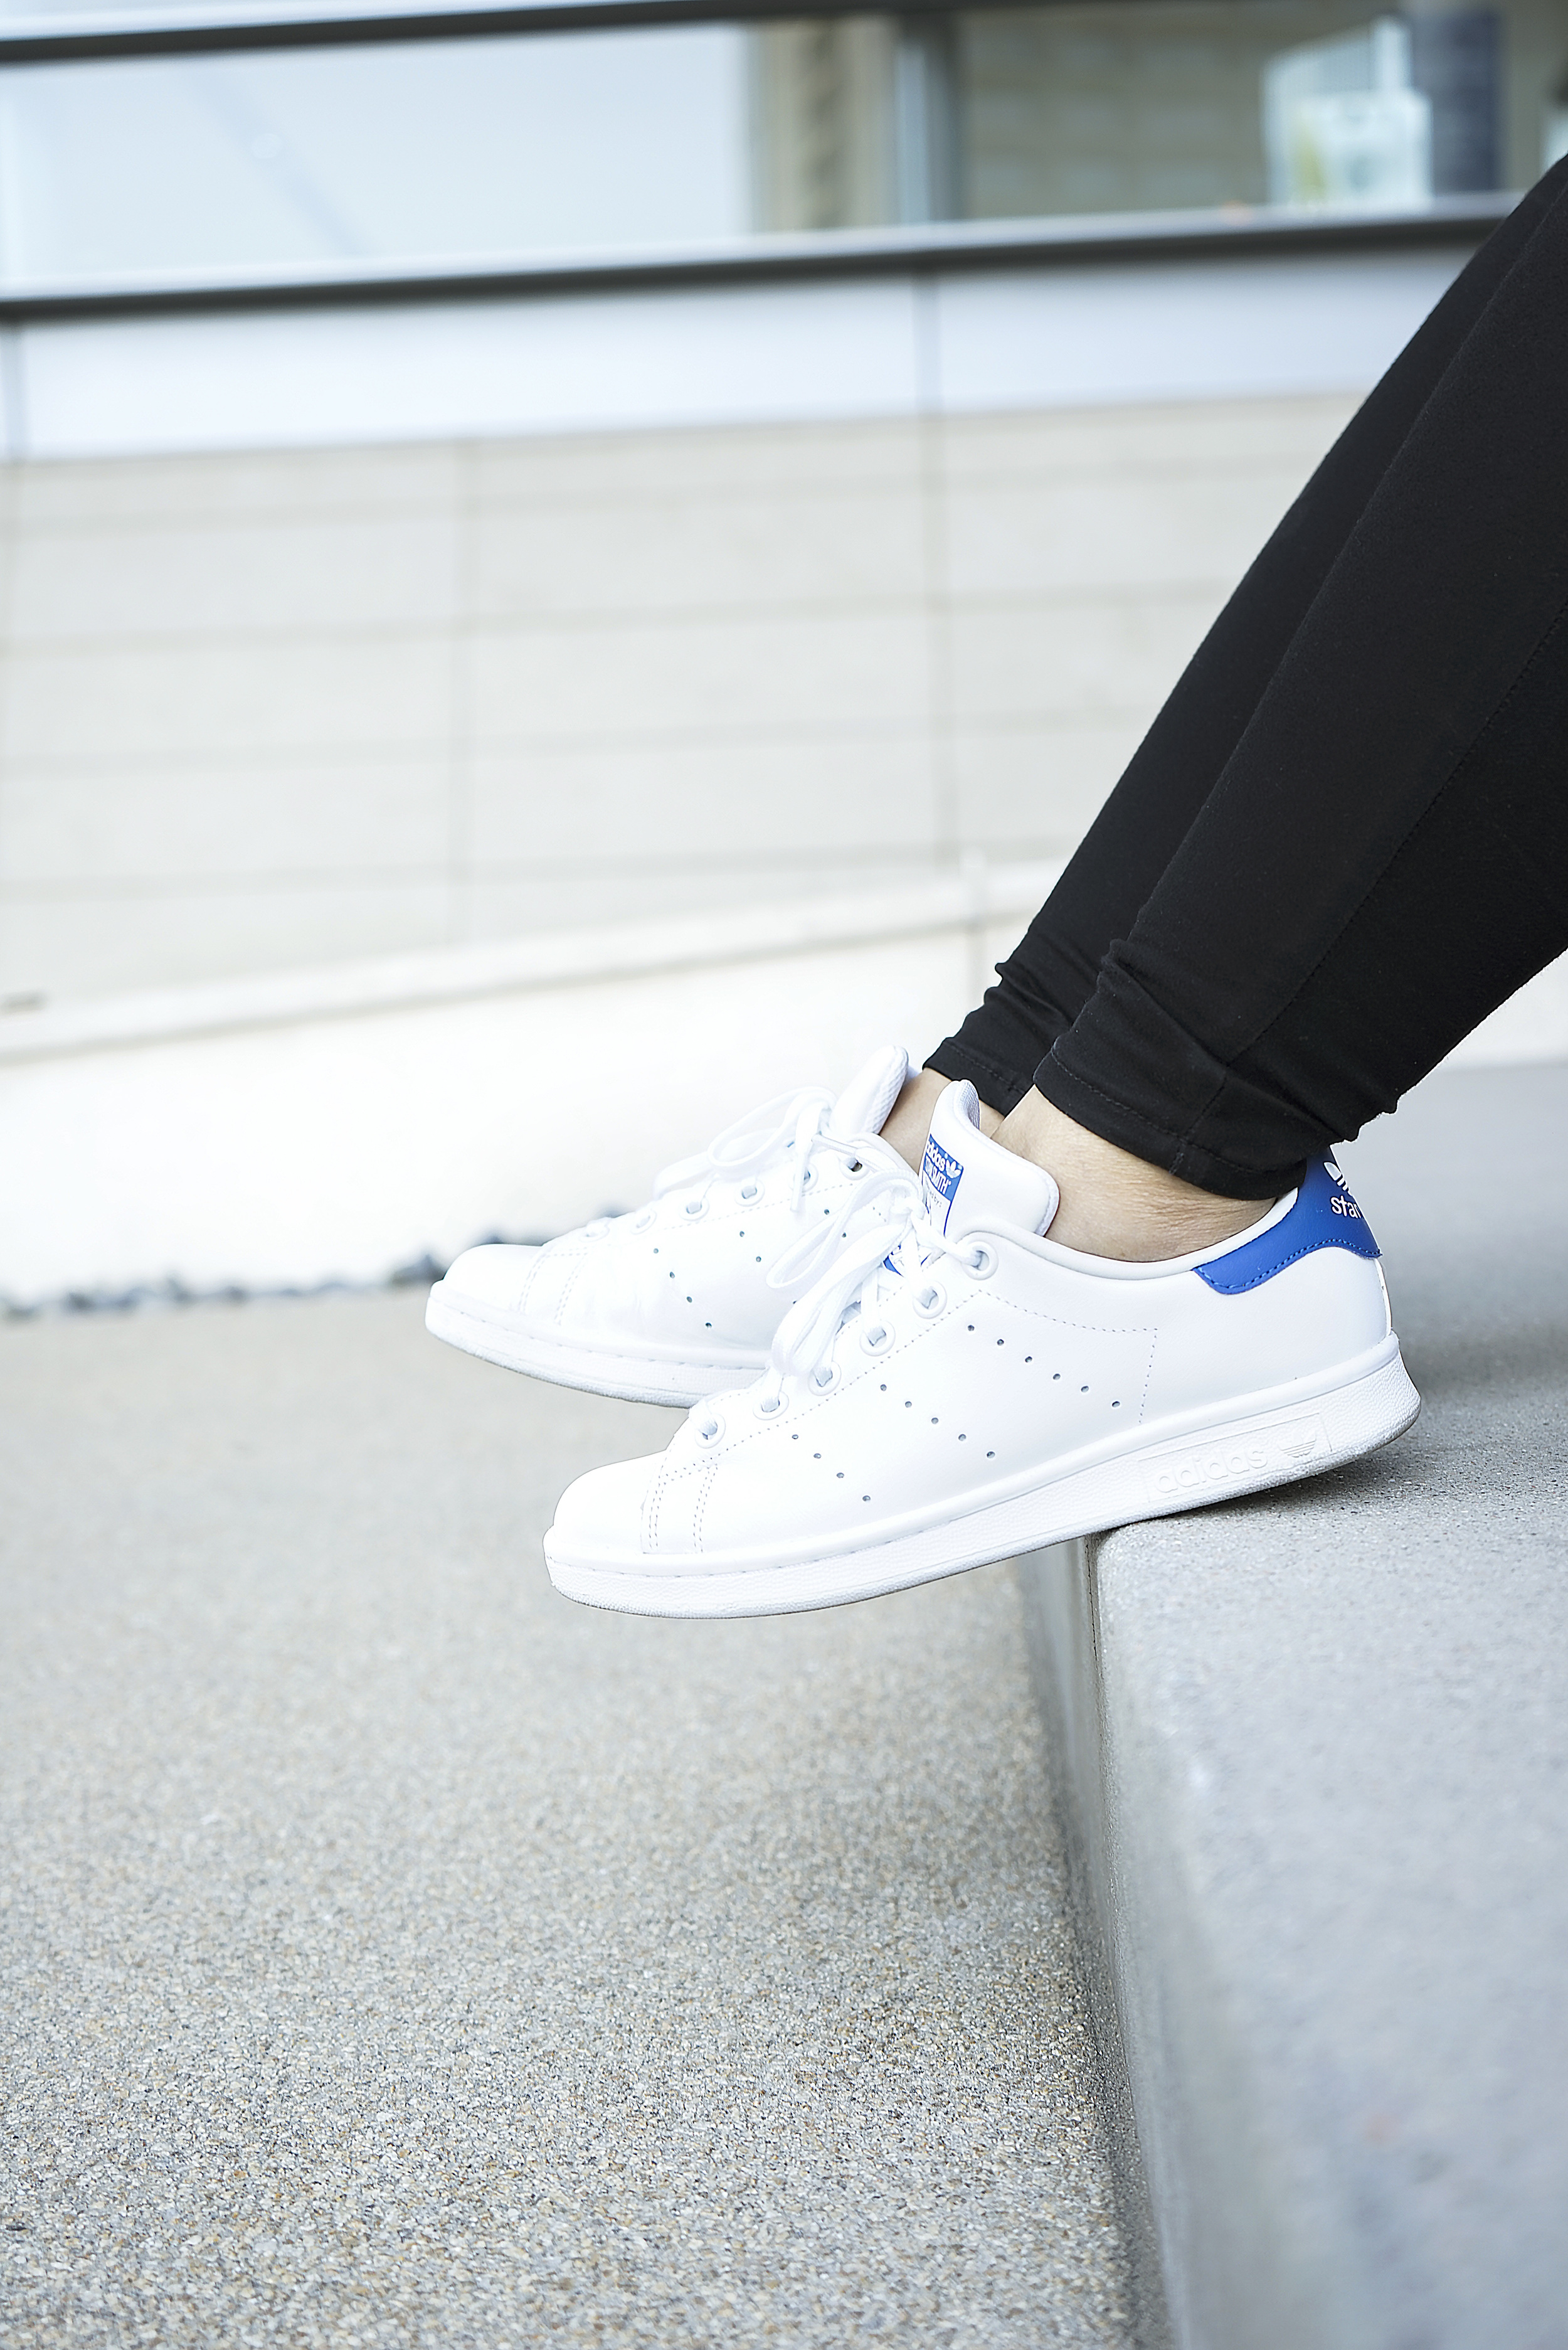 Stan Smiths - Shannon Did What?